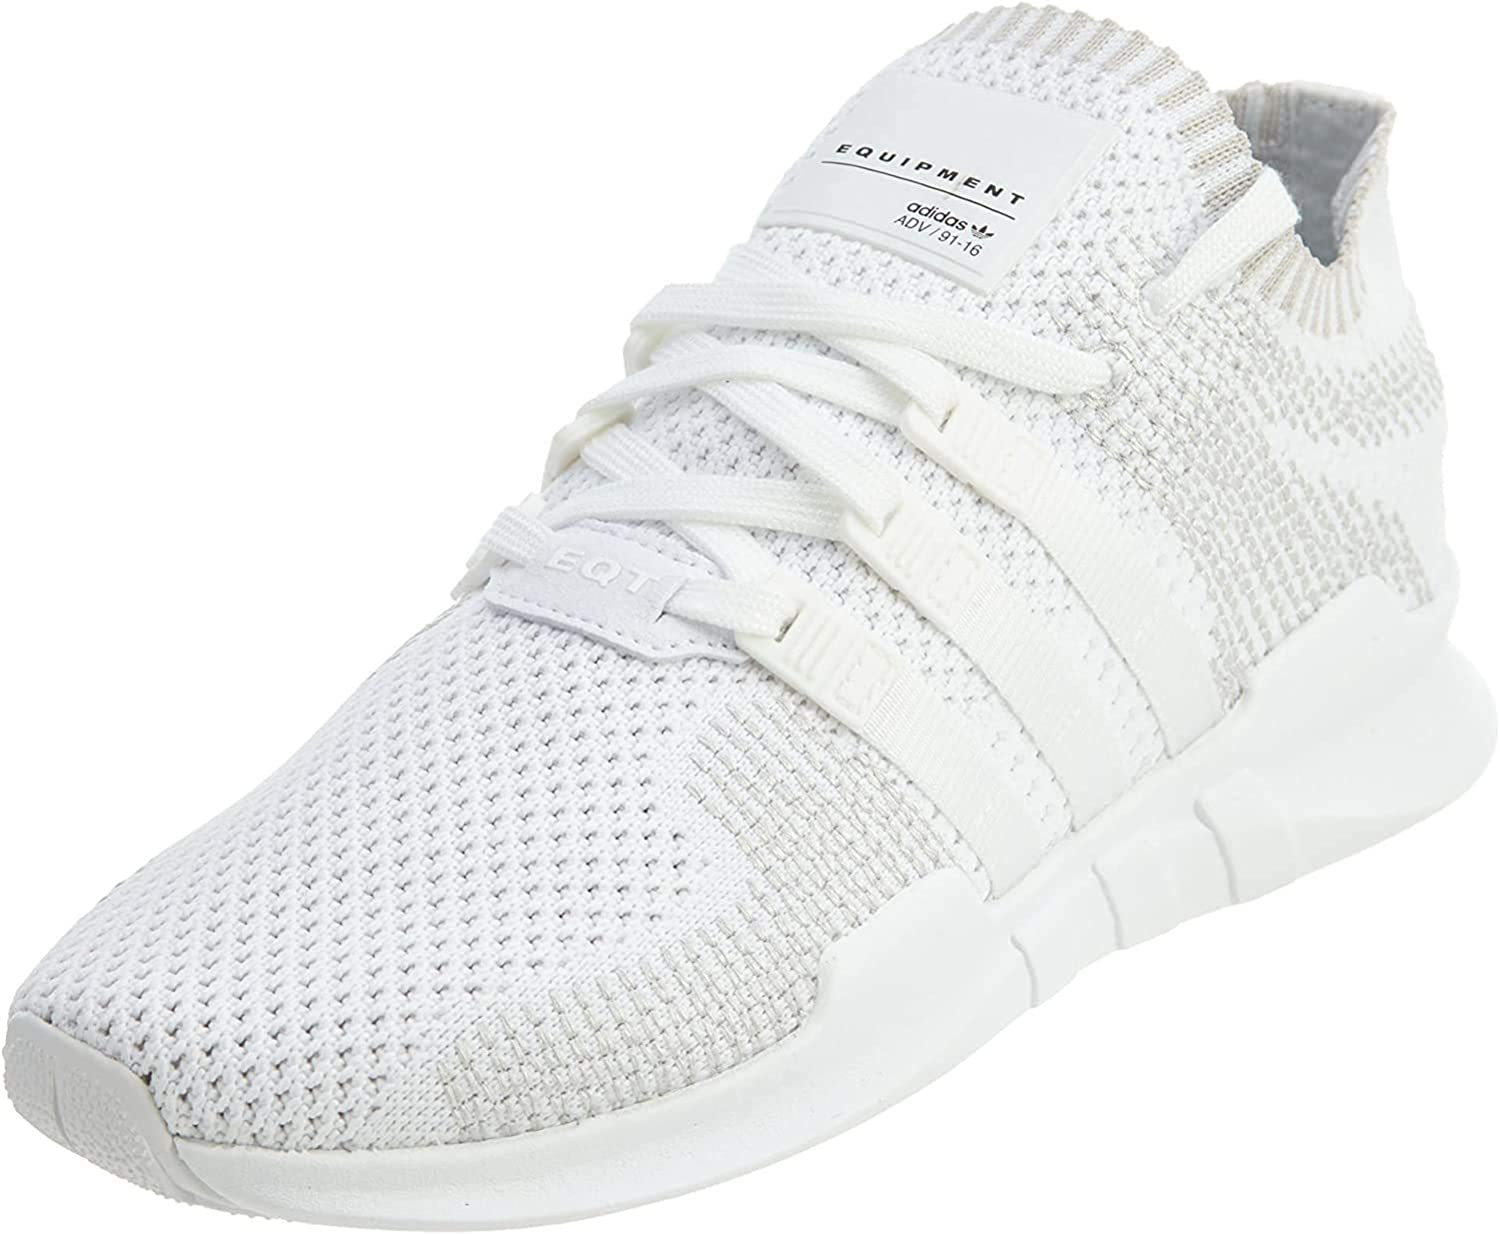 Adidas Damen Eqt Support Adv Sneaker Low Hals Footwear White Green